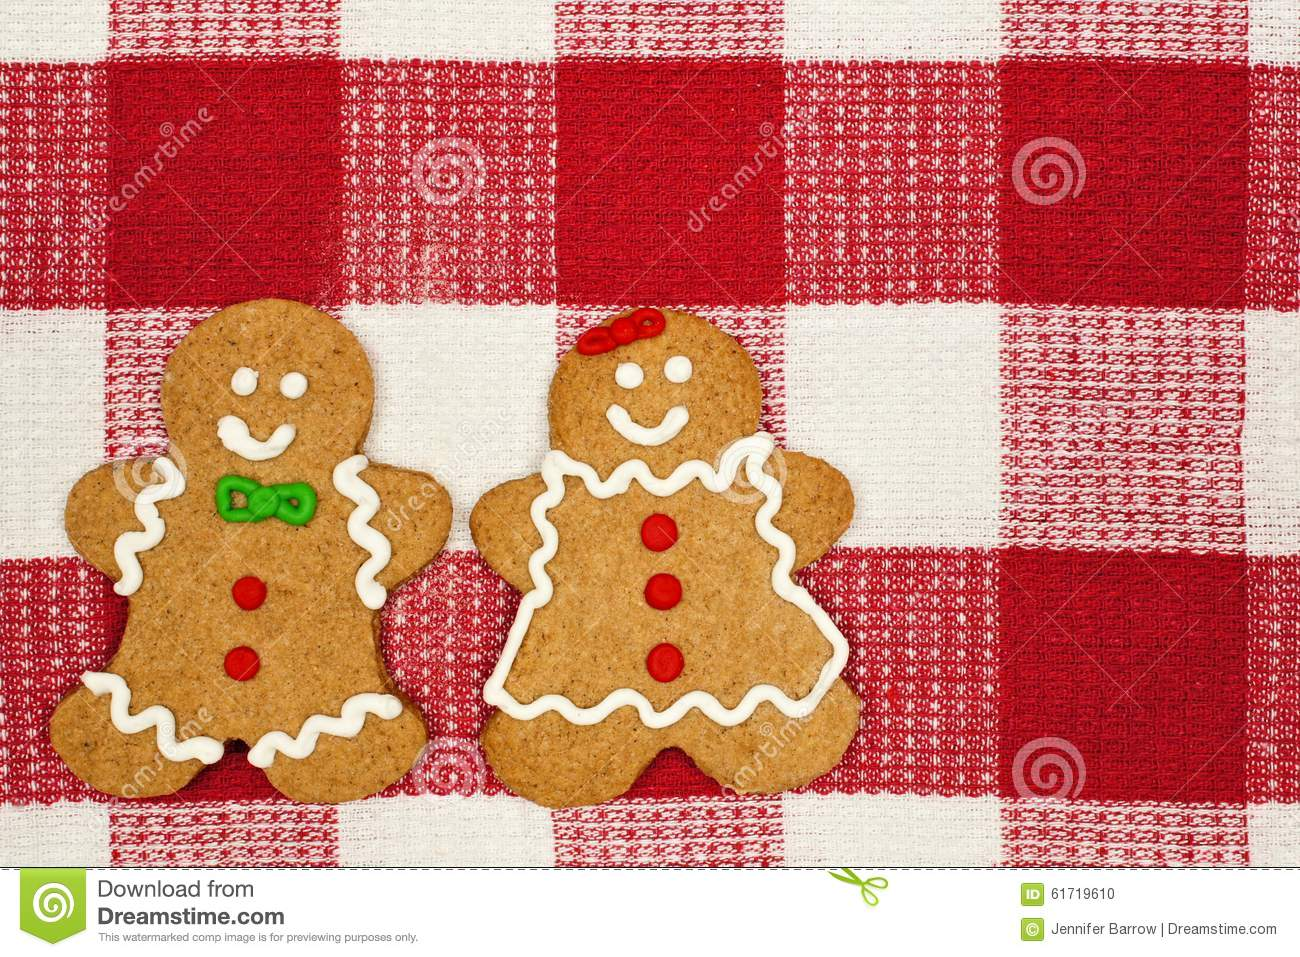 Gingerbread people on a red and white checked cloth background